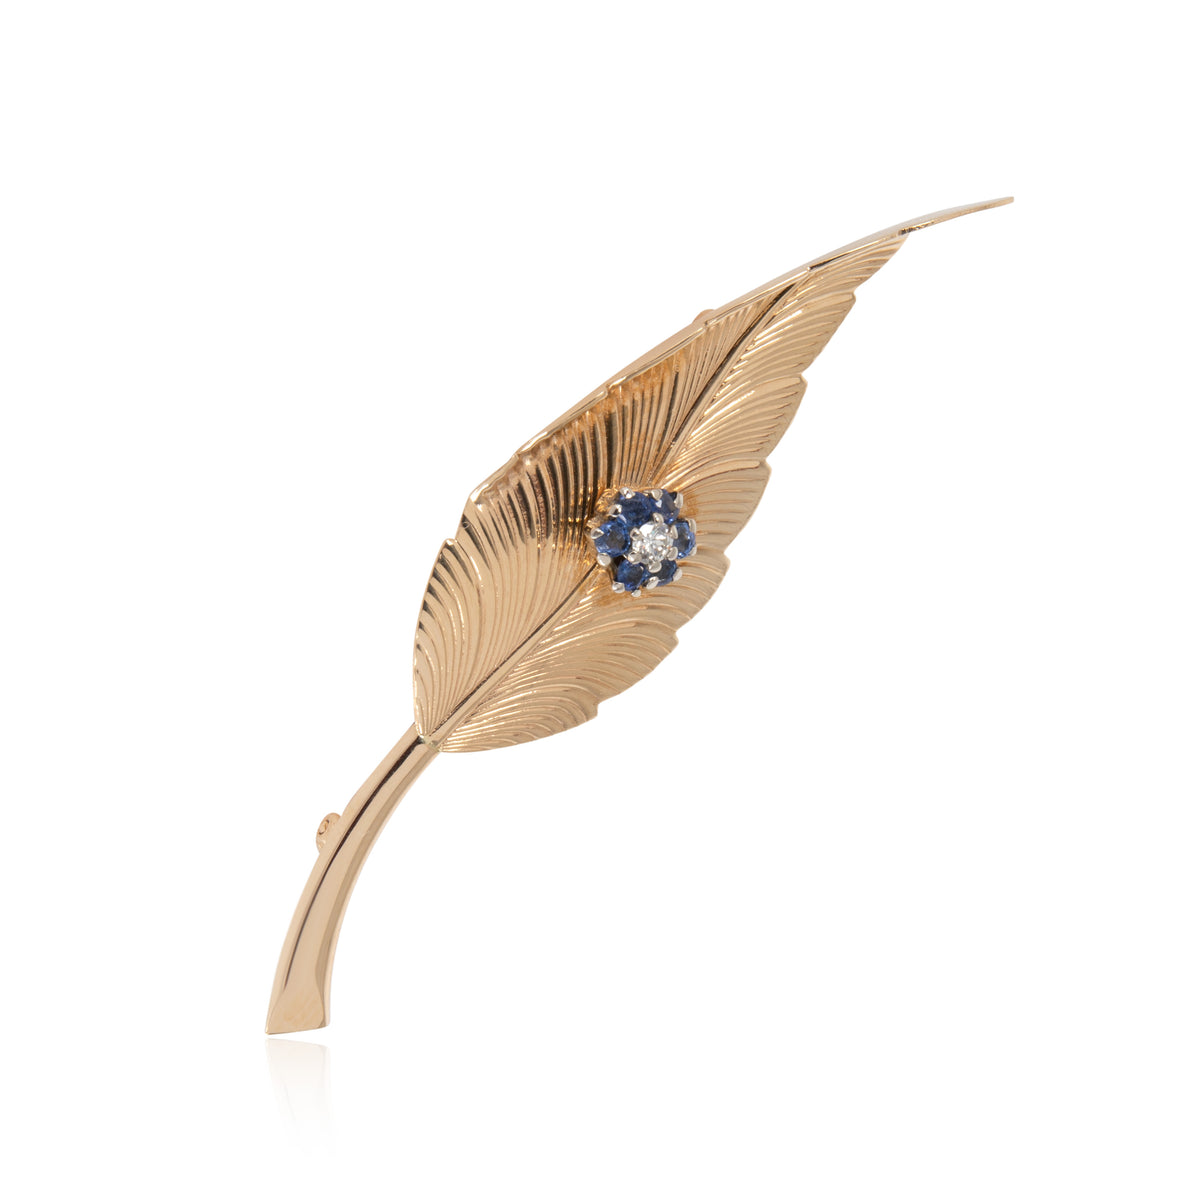 Tiffany & Co. Vintage Leaf Diamond Brooch in 14K Yellow Gold 0.03 CTW